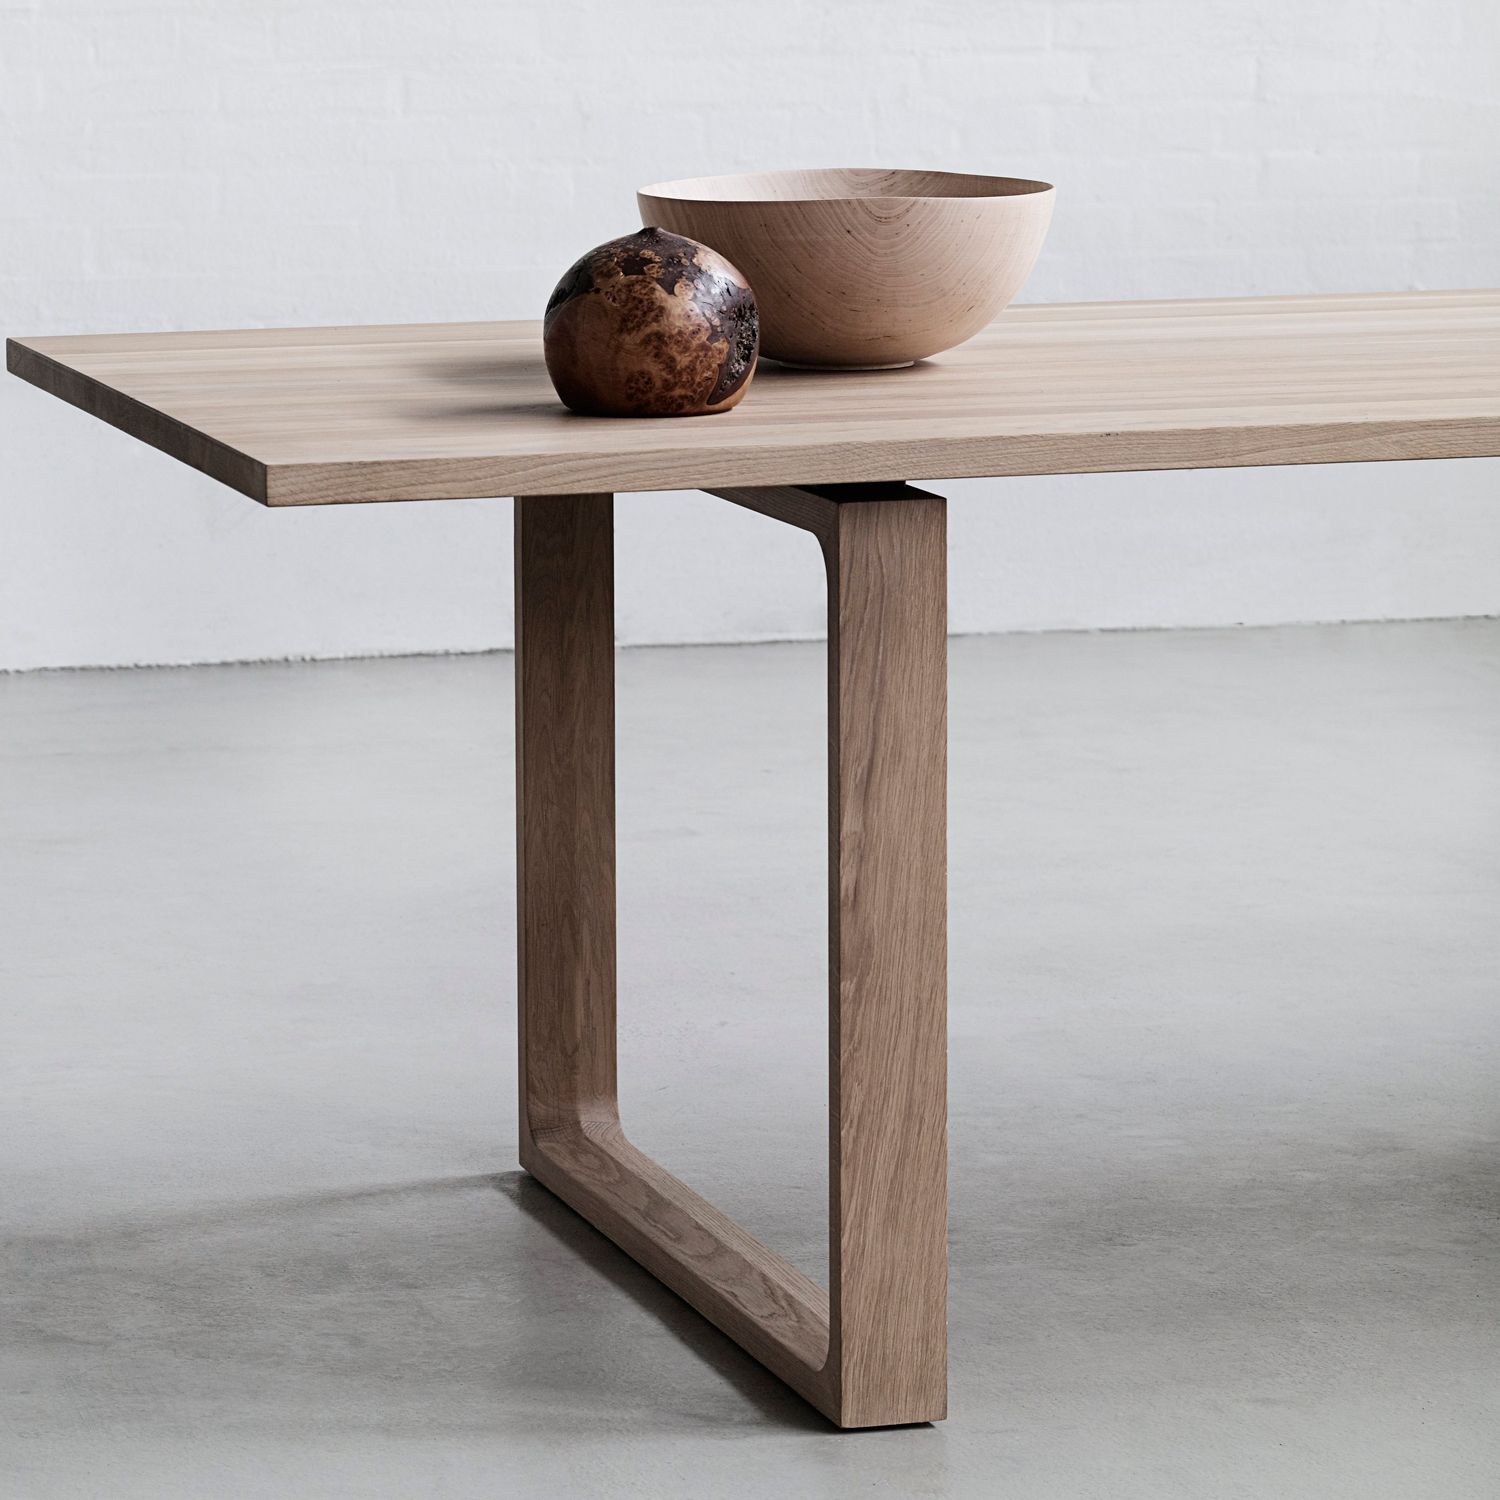 fritz hansen essay dining table in oakcecilie manz